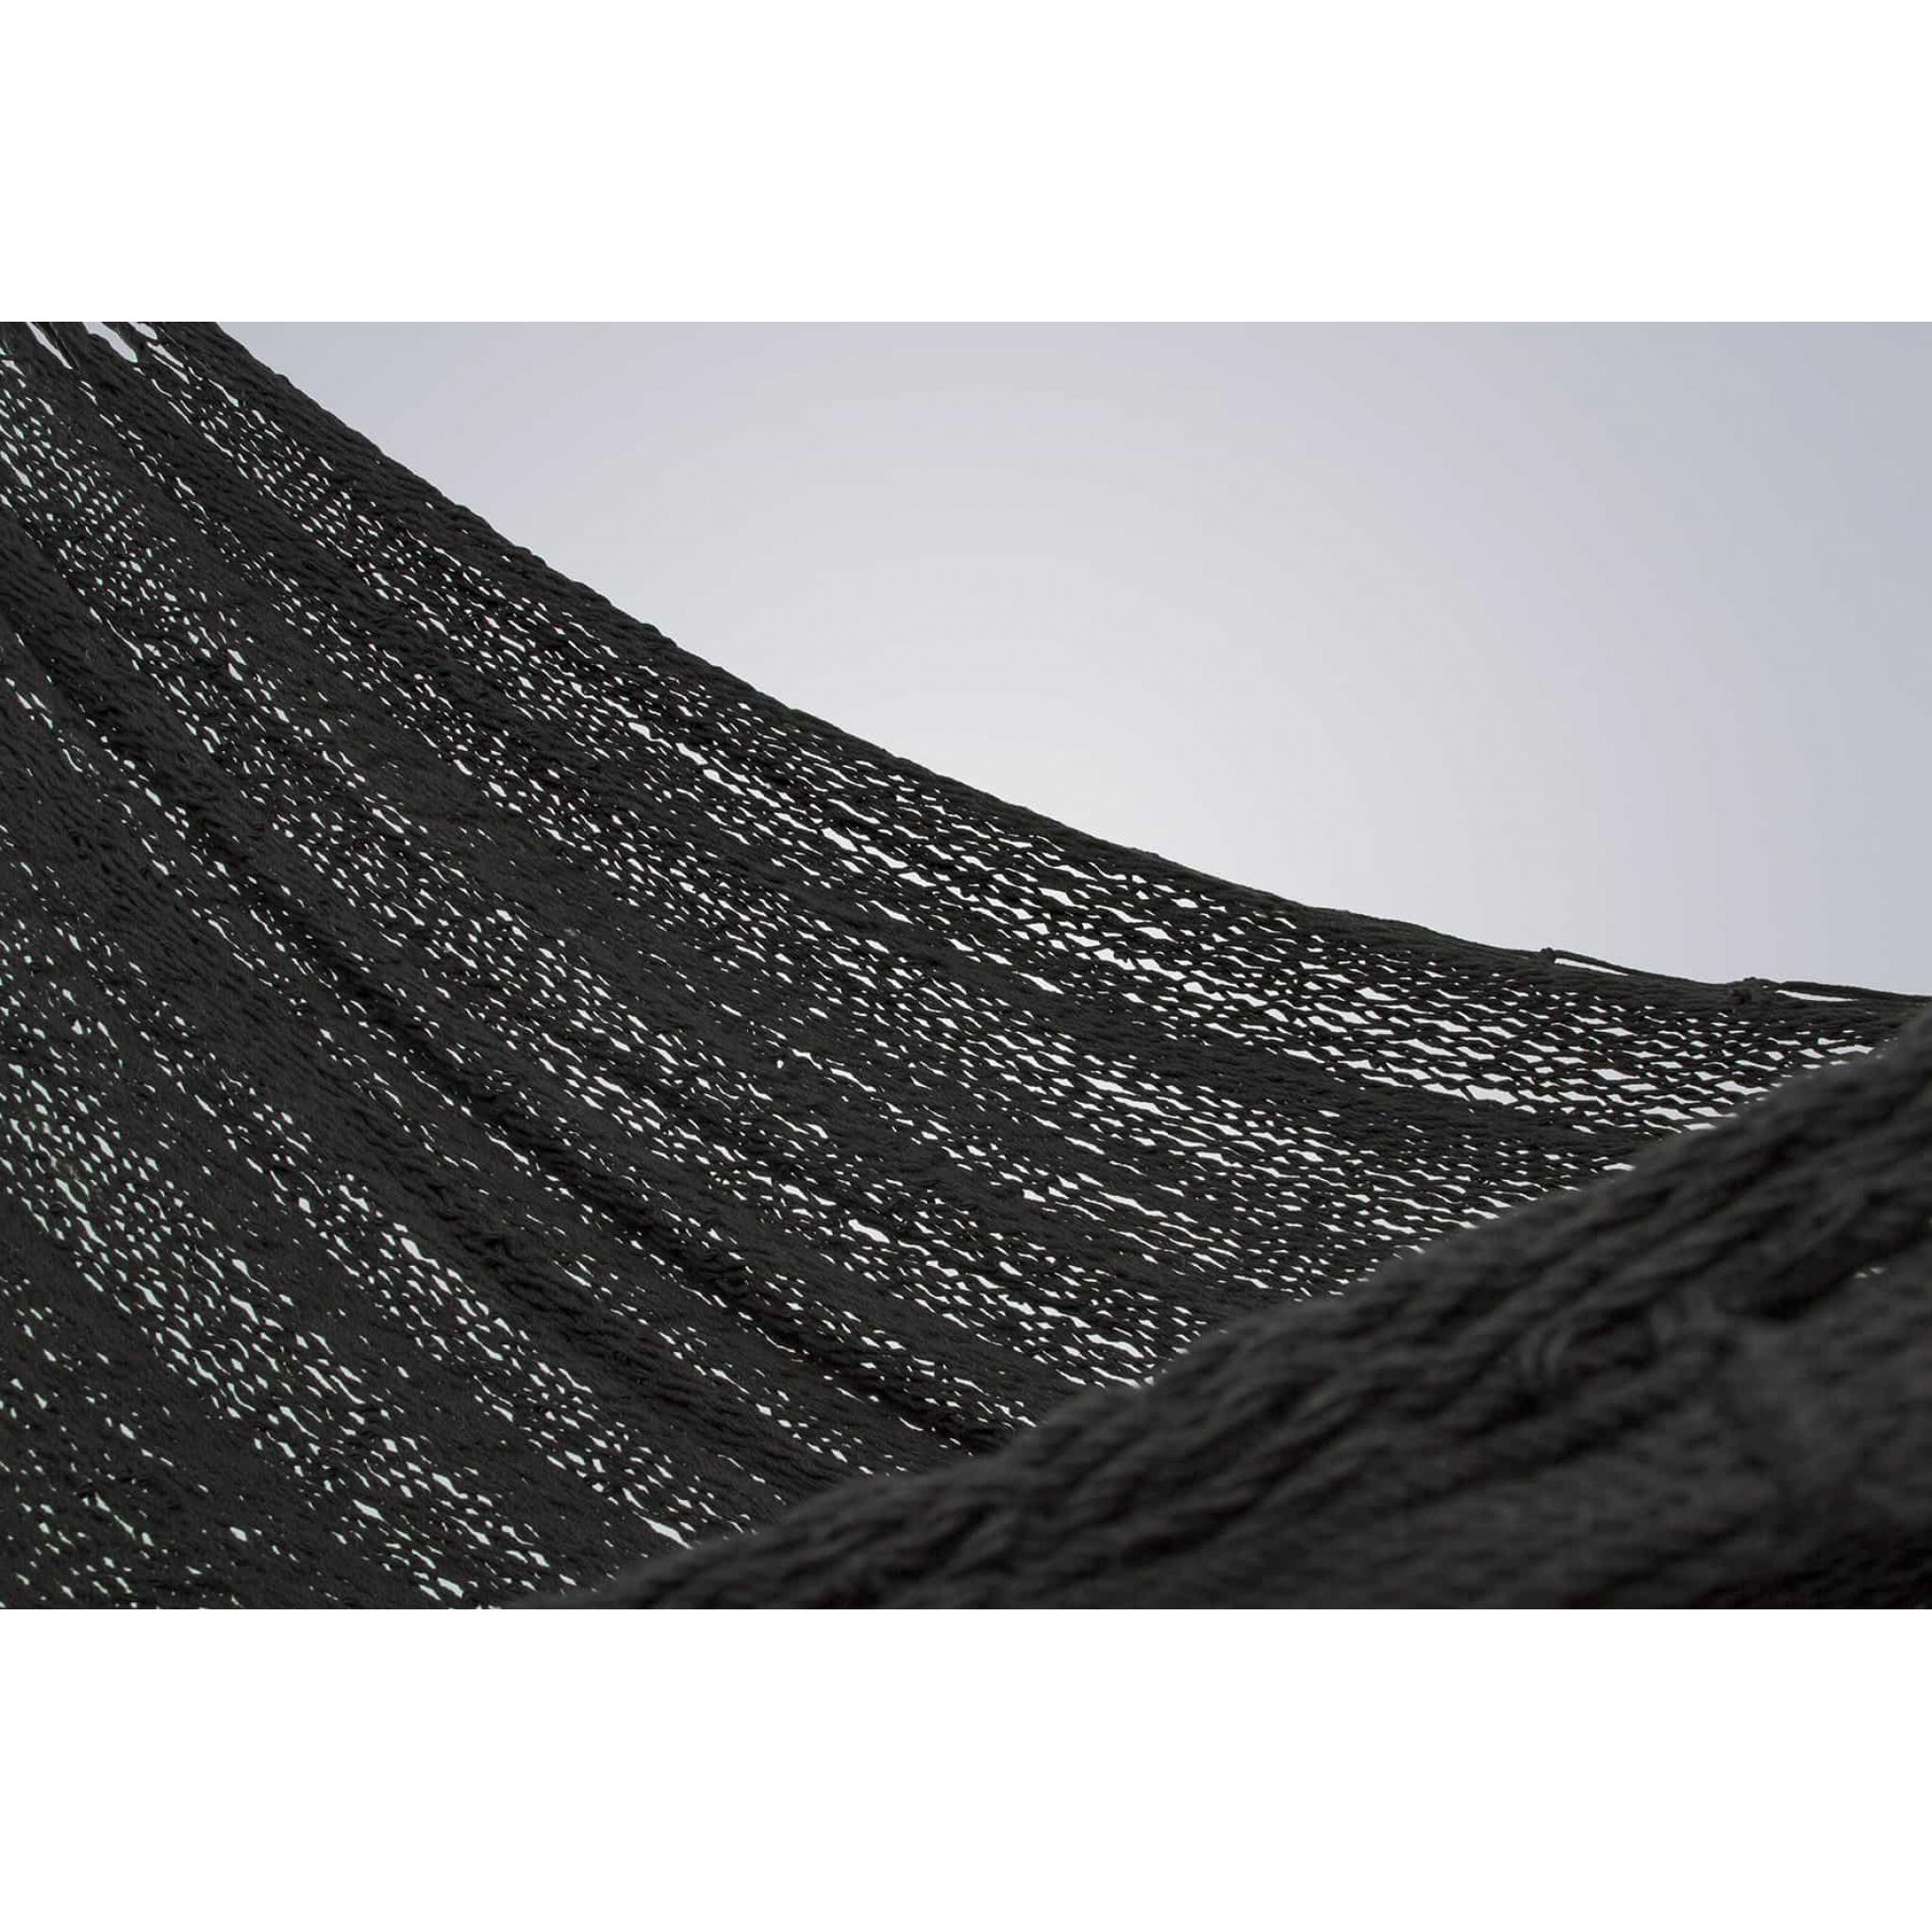 King Size Outdoor Cotton in Black – TK Black swatch